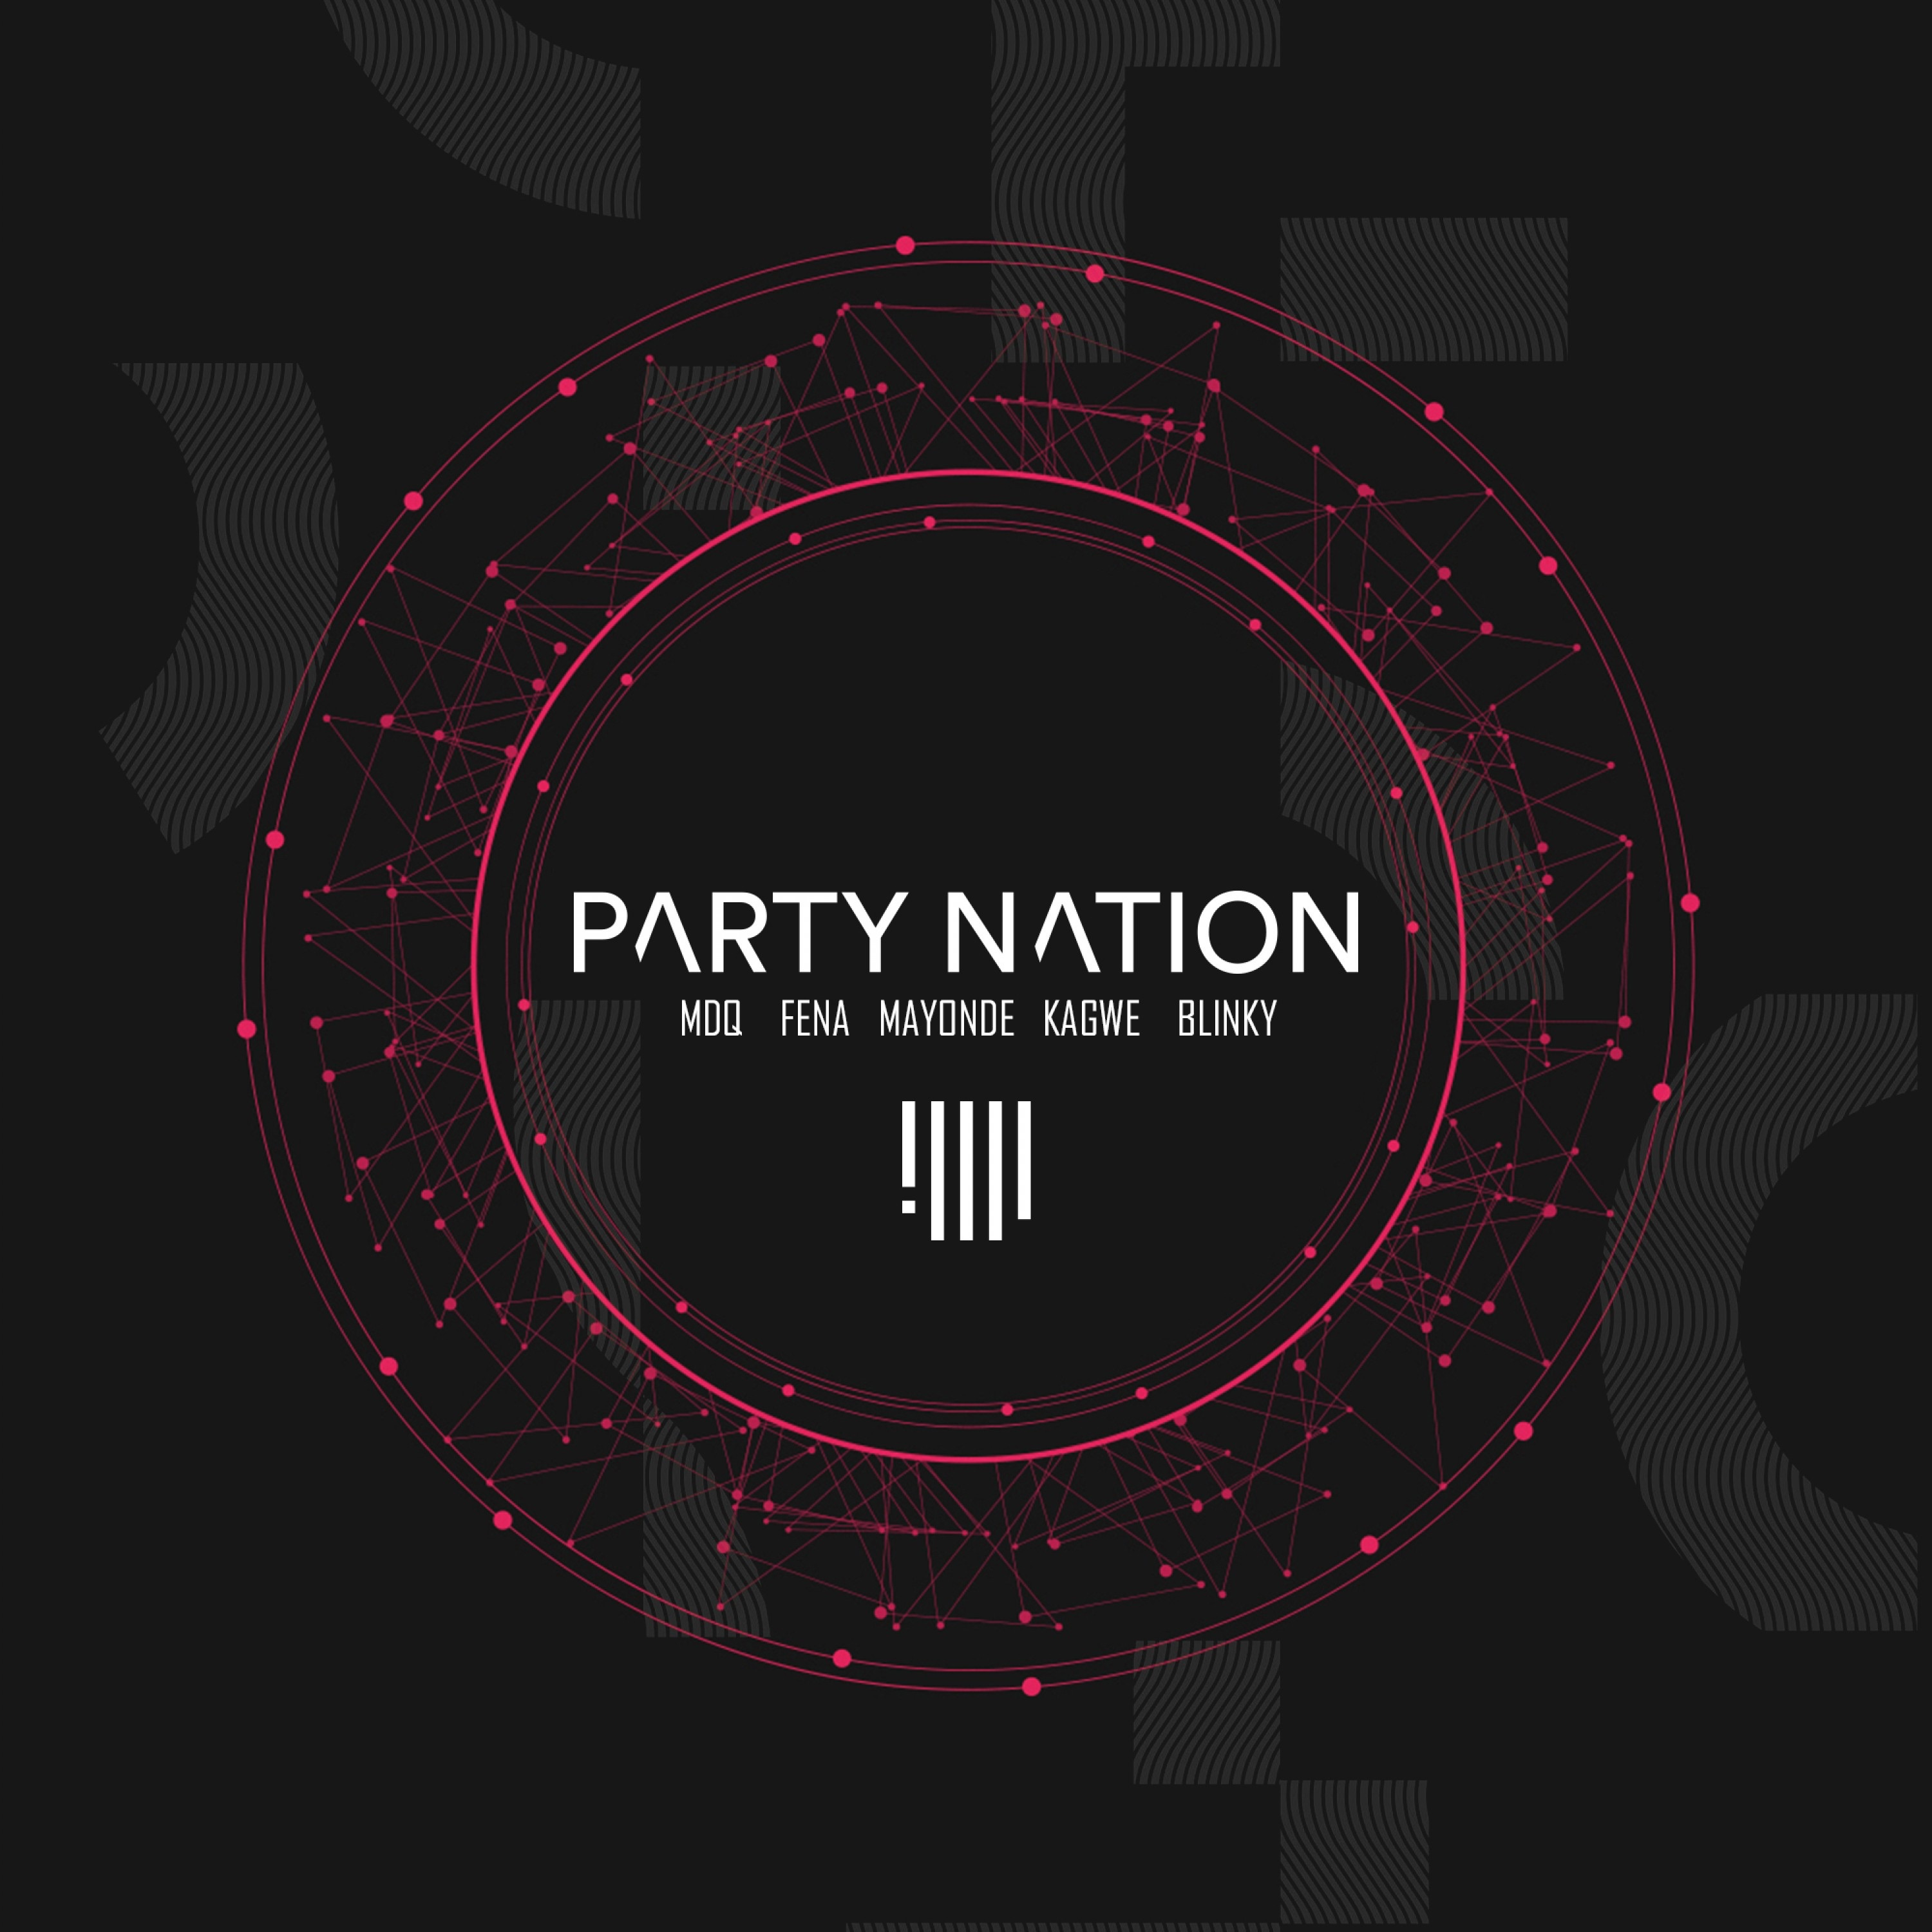 Party Nation